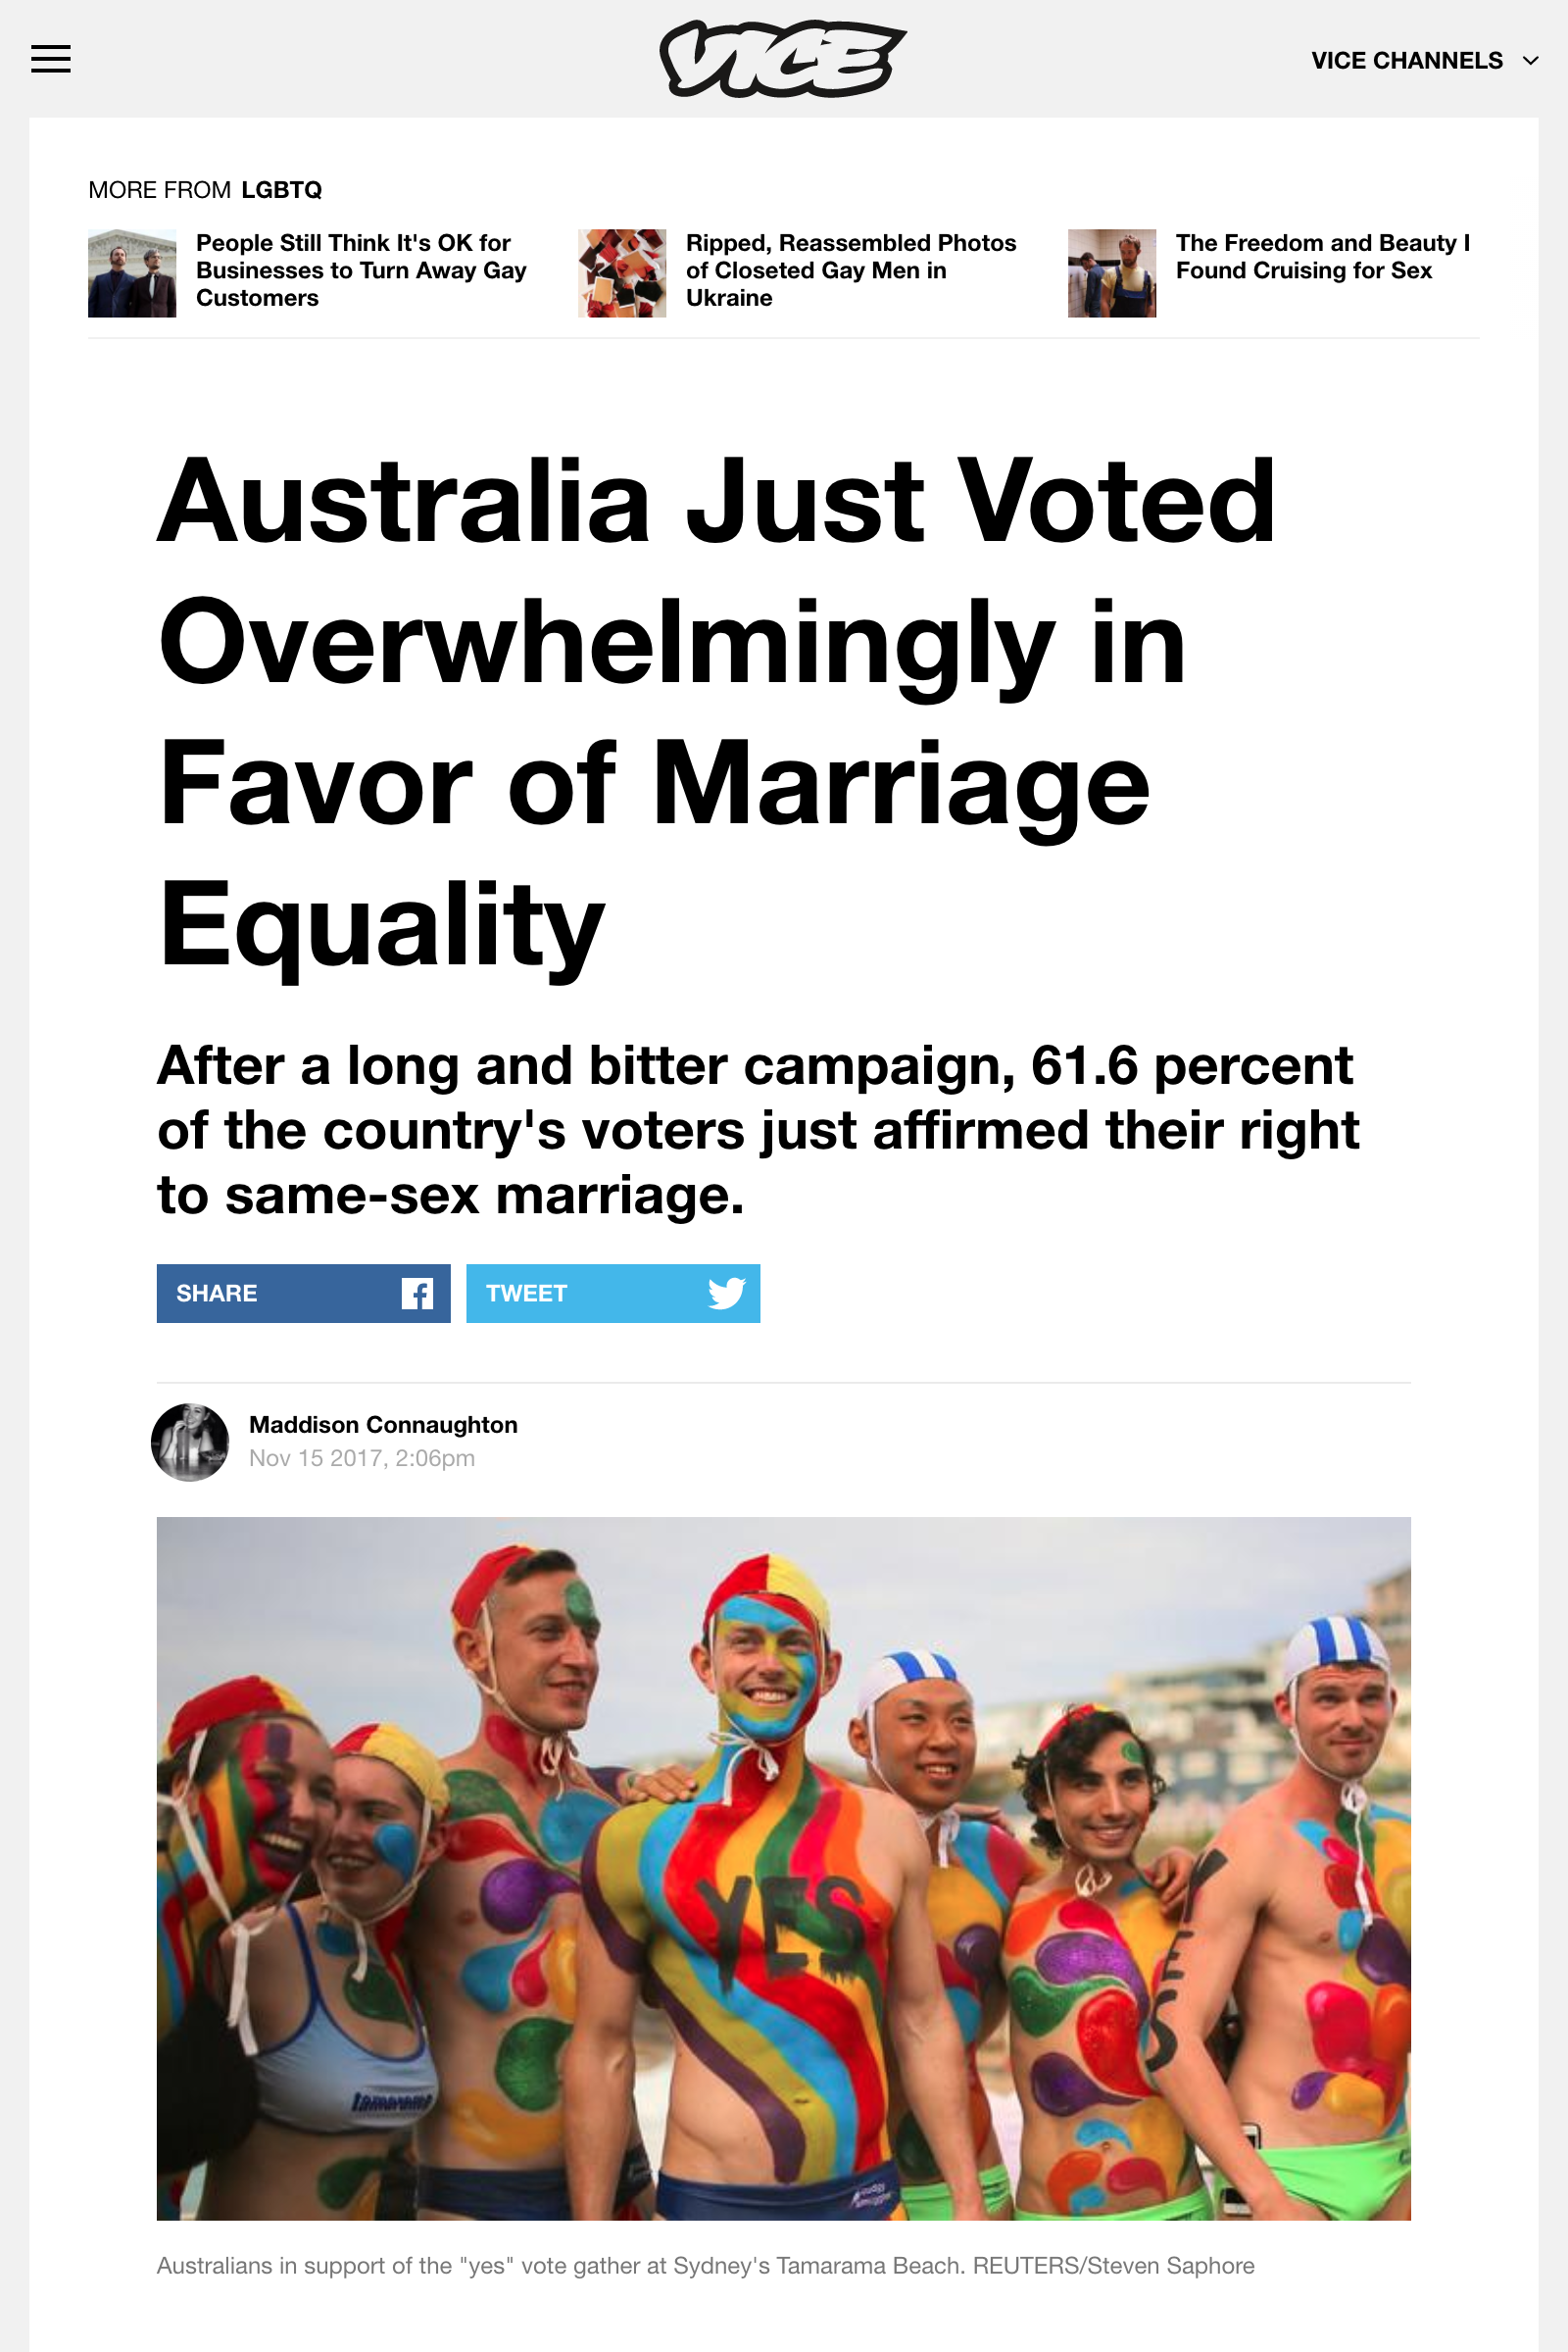 www.vice.com_en_us_article_43n8gb_australia-just-voted-overwhelmingly-in-favor-of-marriage-equality (1).png